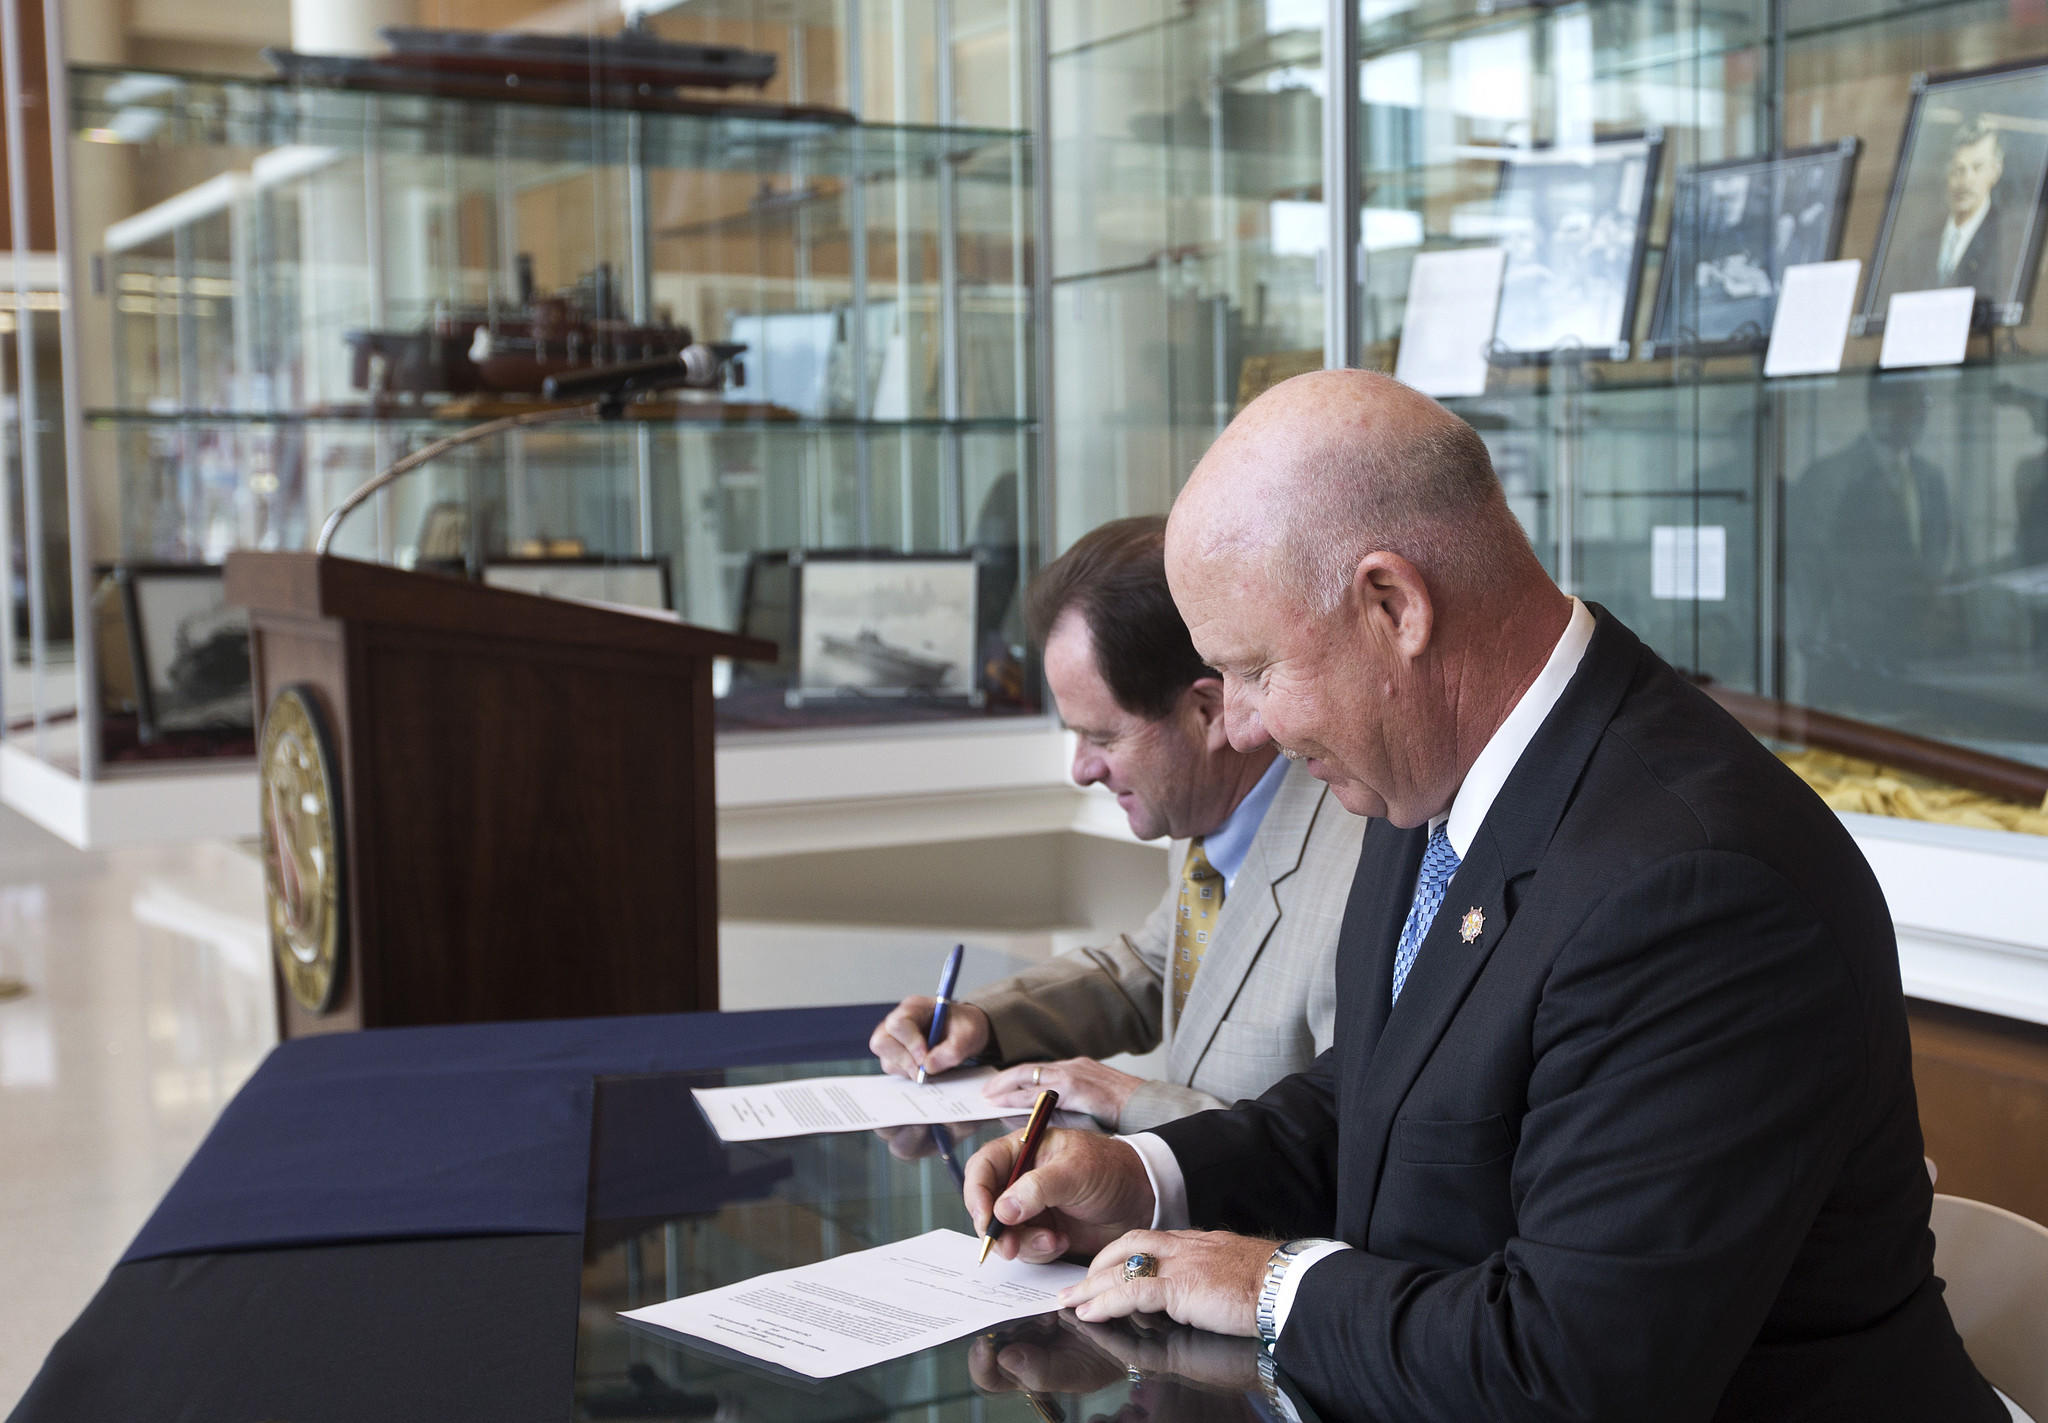 John Broderick, president of Old Dominion University, left, and Danny Hunley, vice president of operations at Newport News Shipbuilding, right, sign a memorandum for a new partnership to offer students an engineering apprenticeship program.